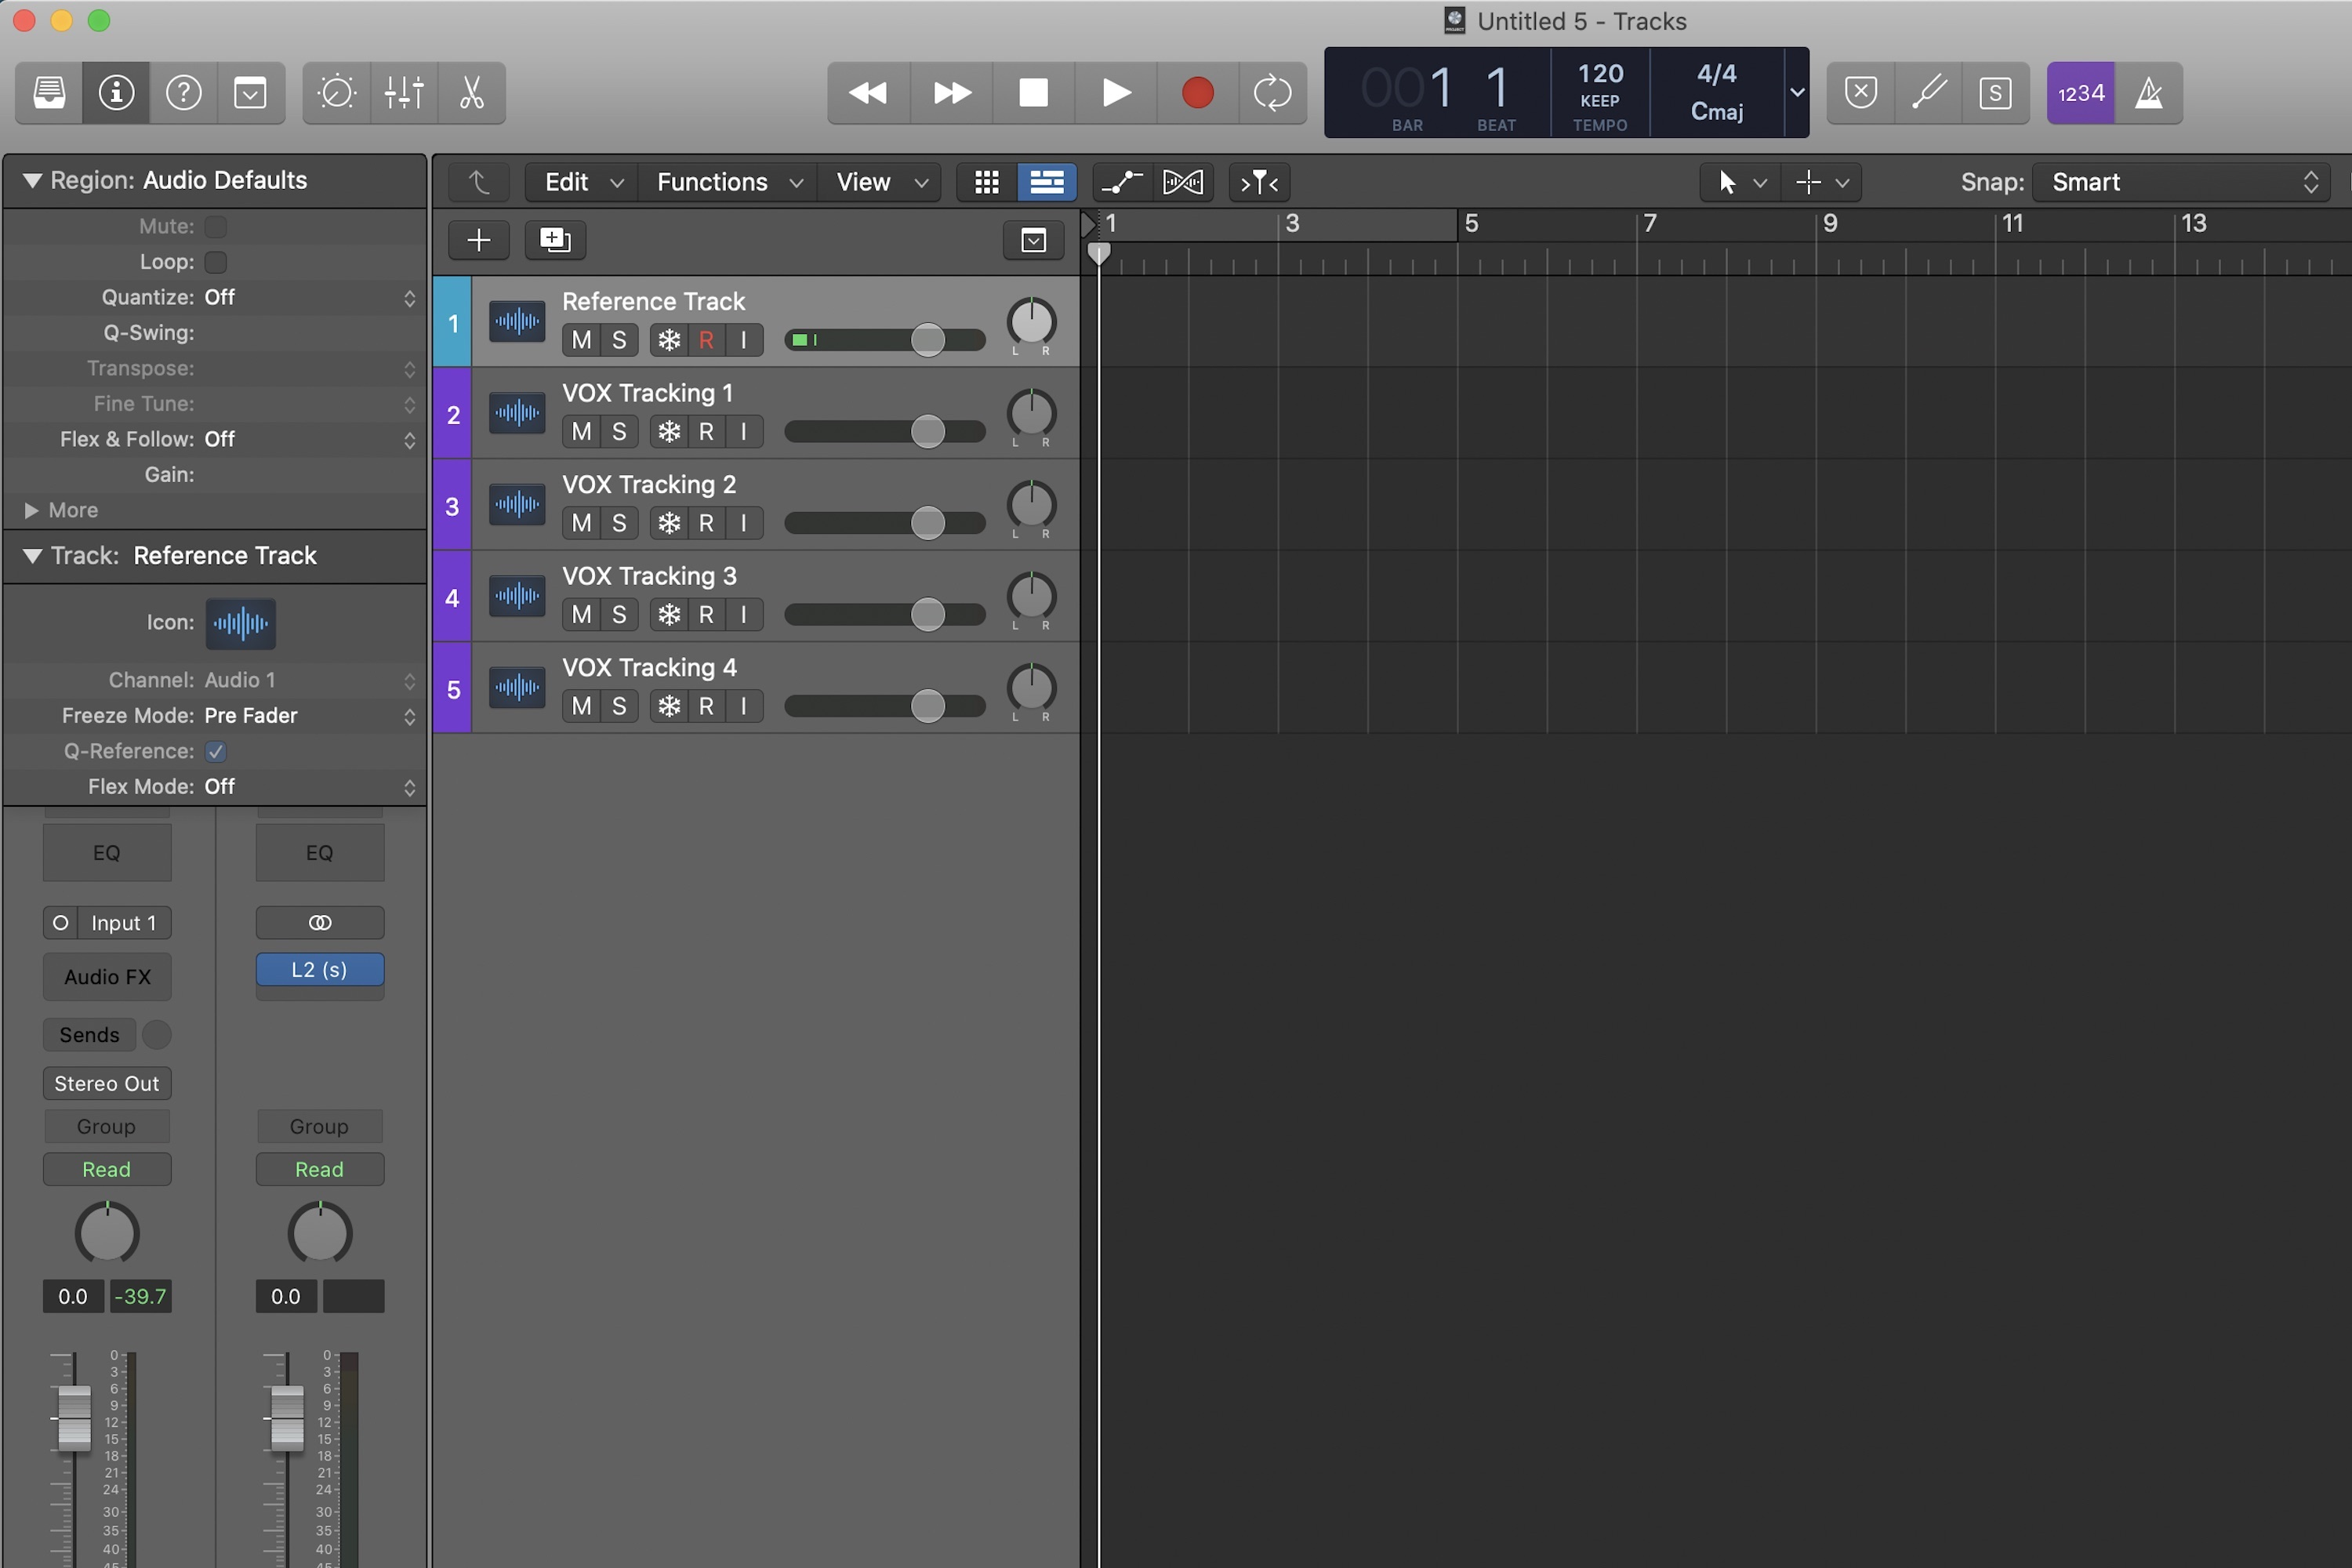 Logic Pro X new project with reference tracks and vocal tracks.